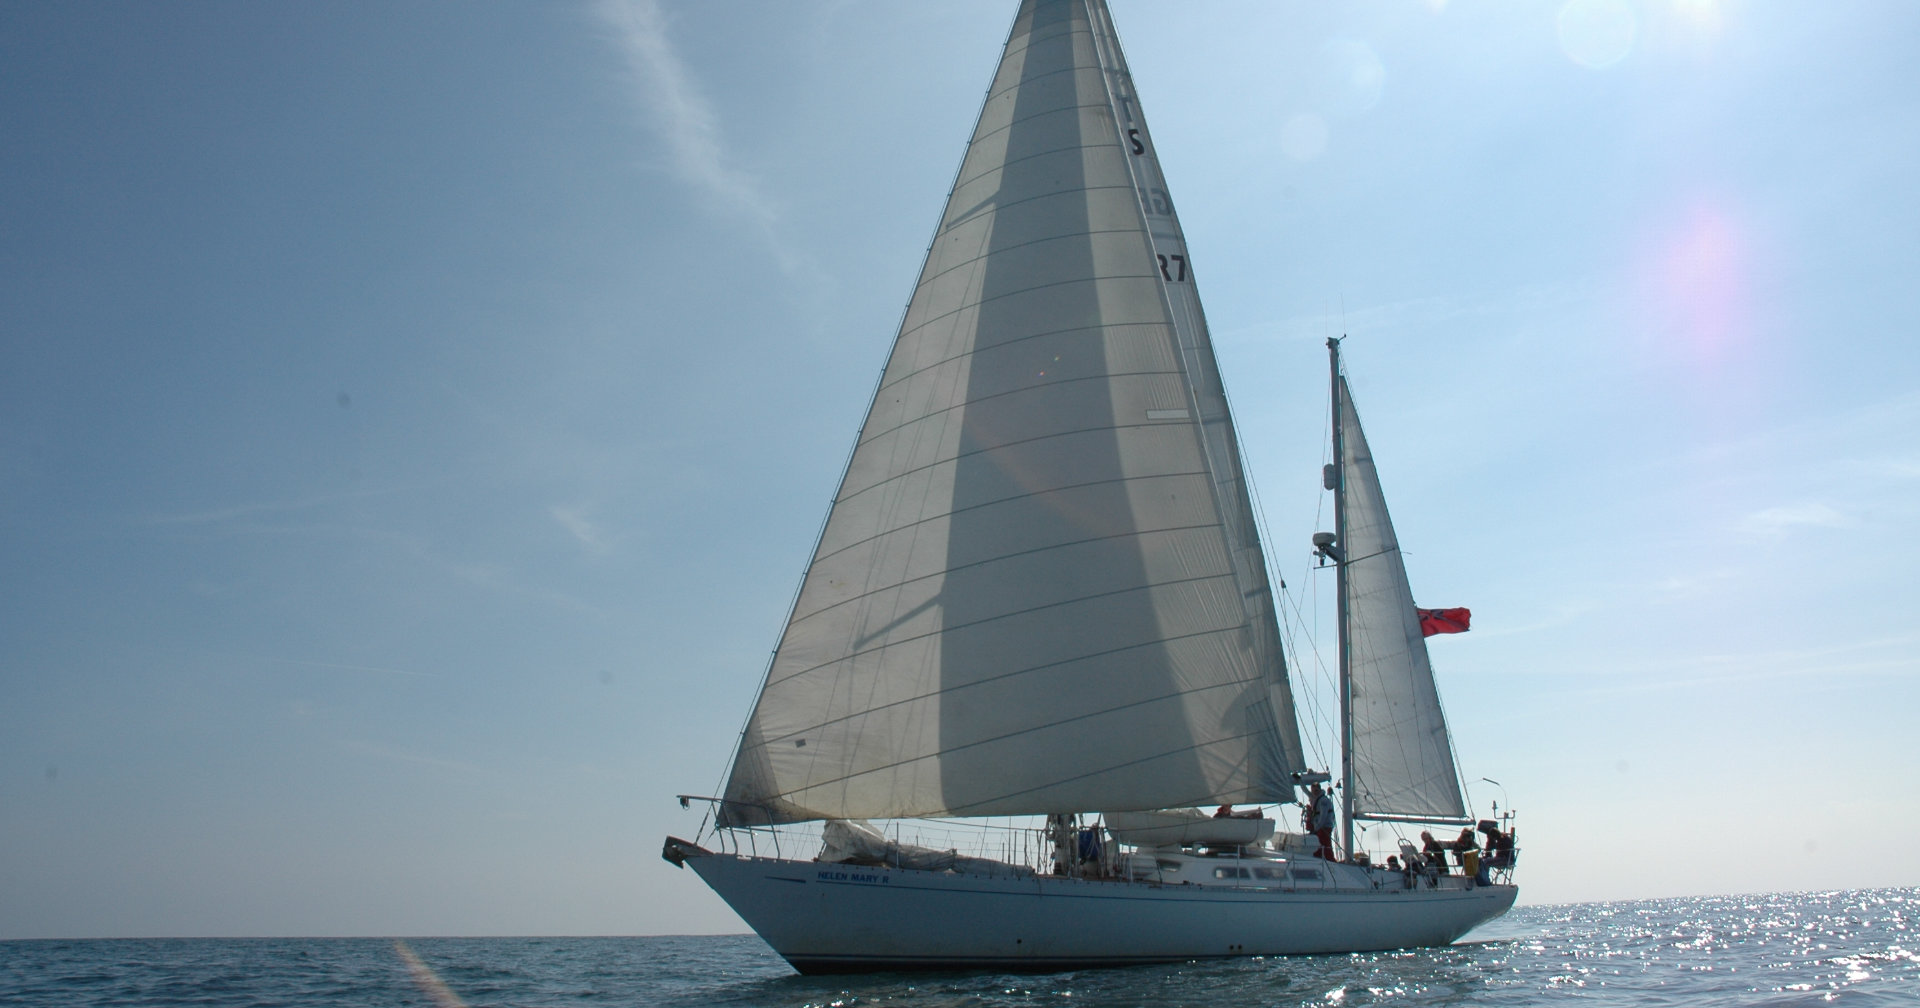 Want to give sailing a try, or perhaps just want a day out on the water. You don't need any previous experience to come sailing with us